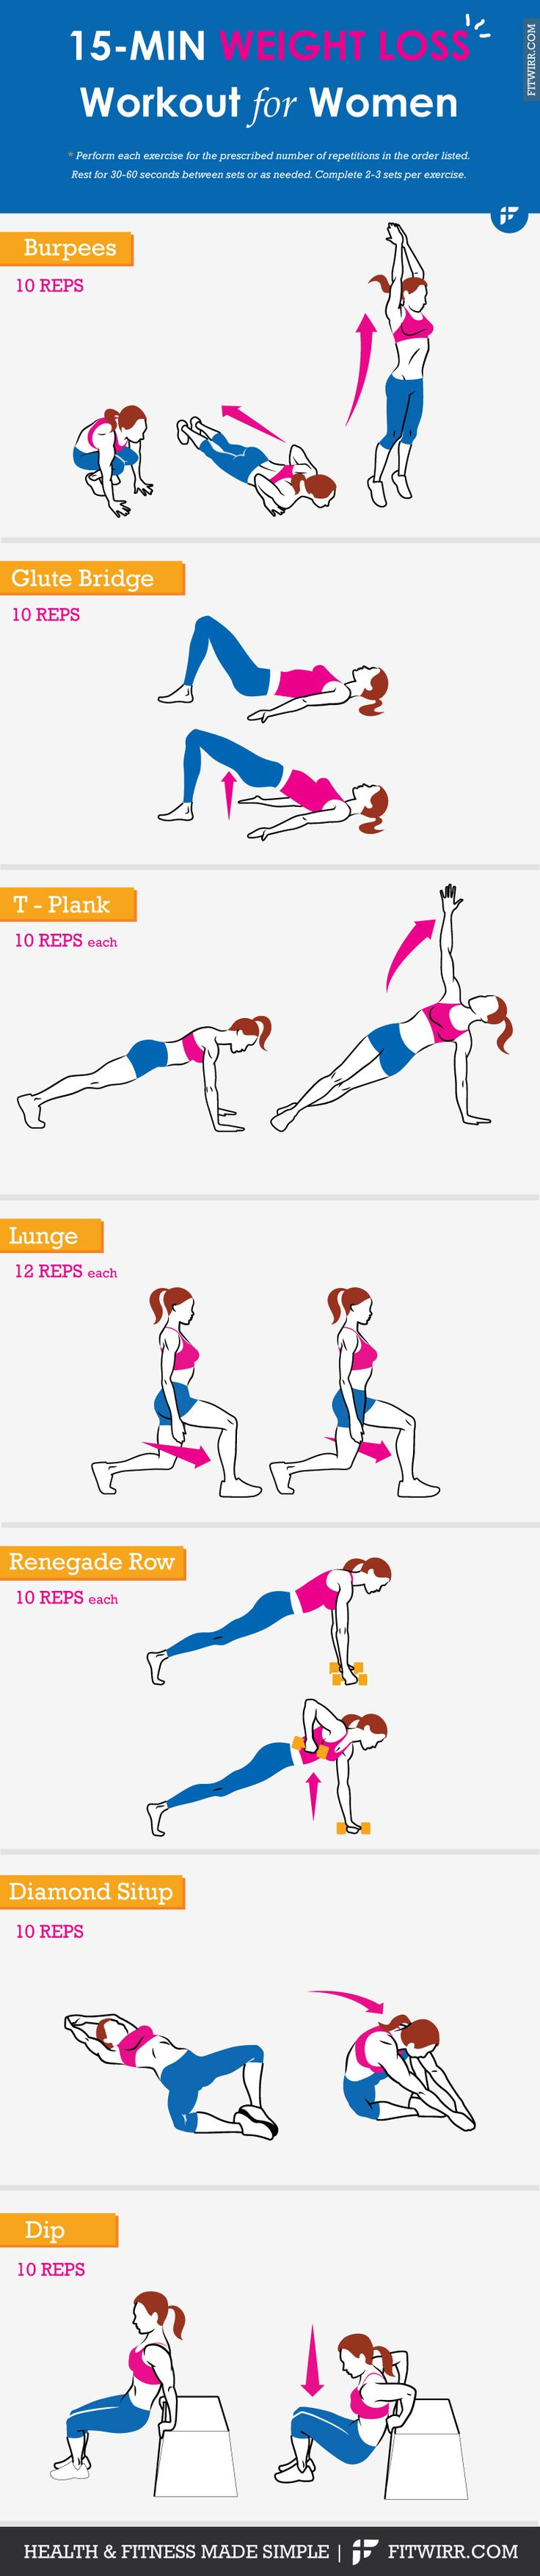 22 super effective exercises for weight loss + 15-minute weight loss workout you can do anywhere. No-equipment, just your own body resistance.